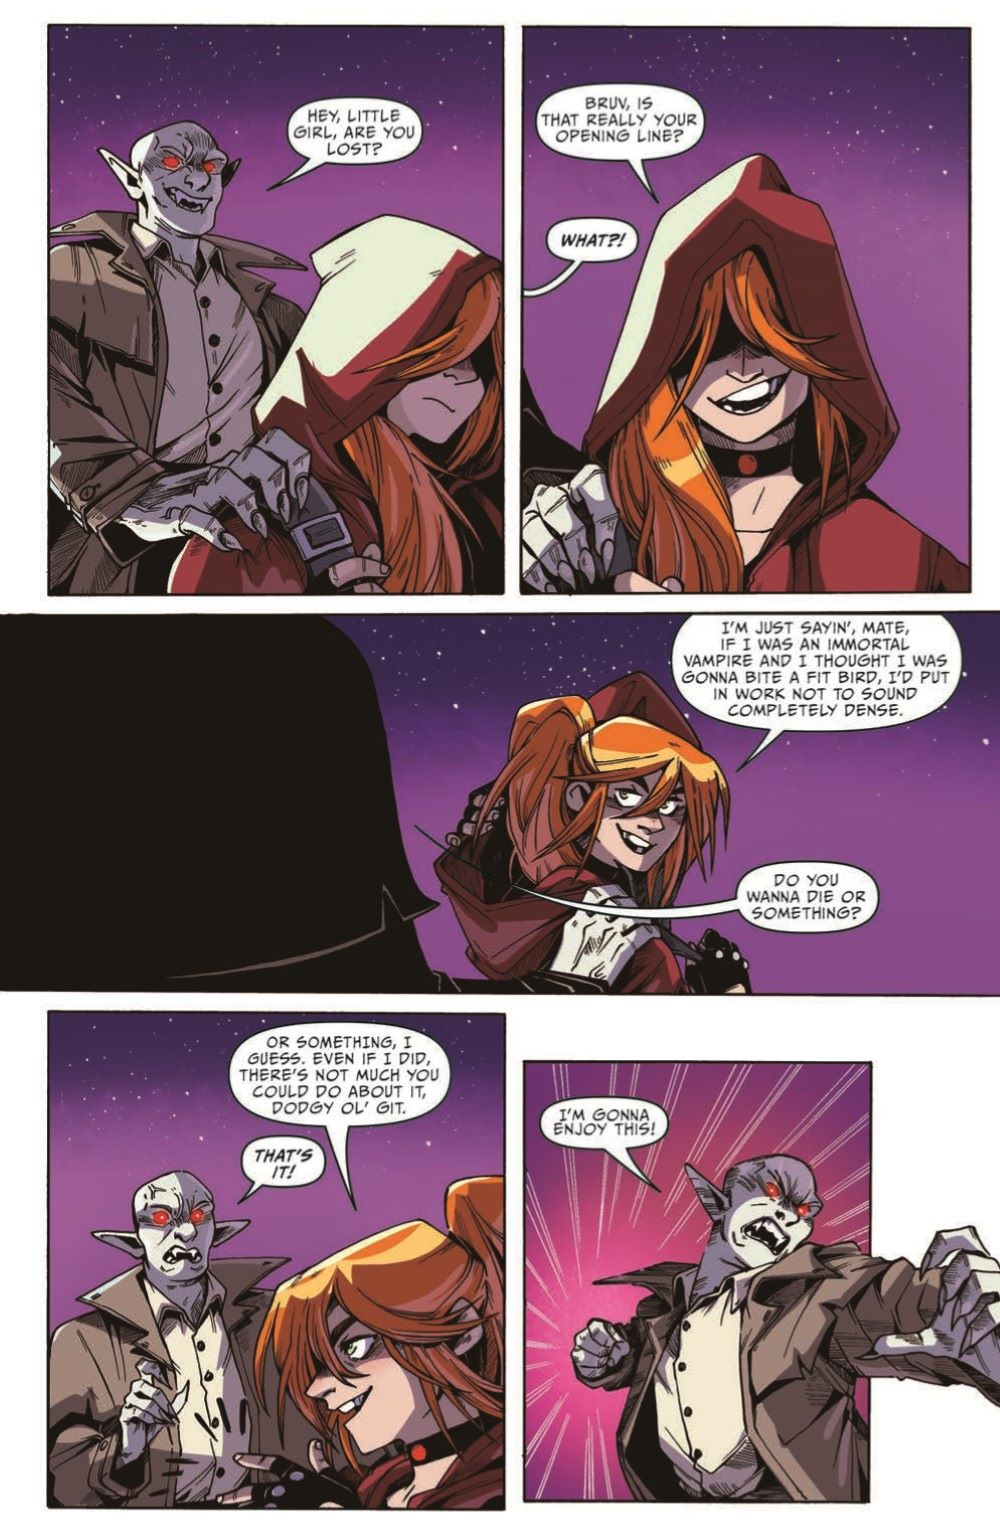 Marvel_Chillers_02-pr-7 ComicList Previews: MARVEL ACTION CHILLERS #2